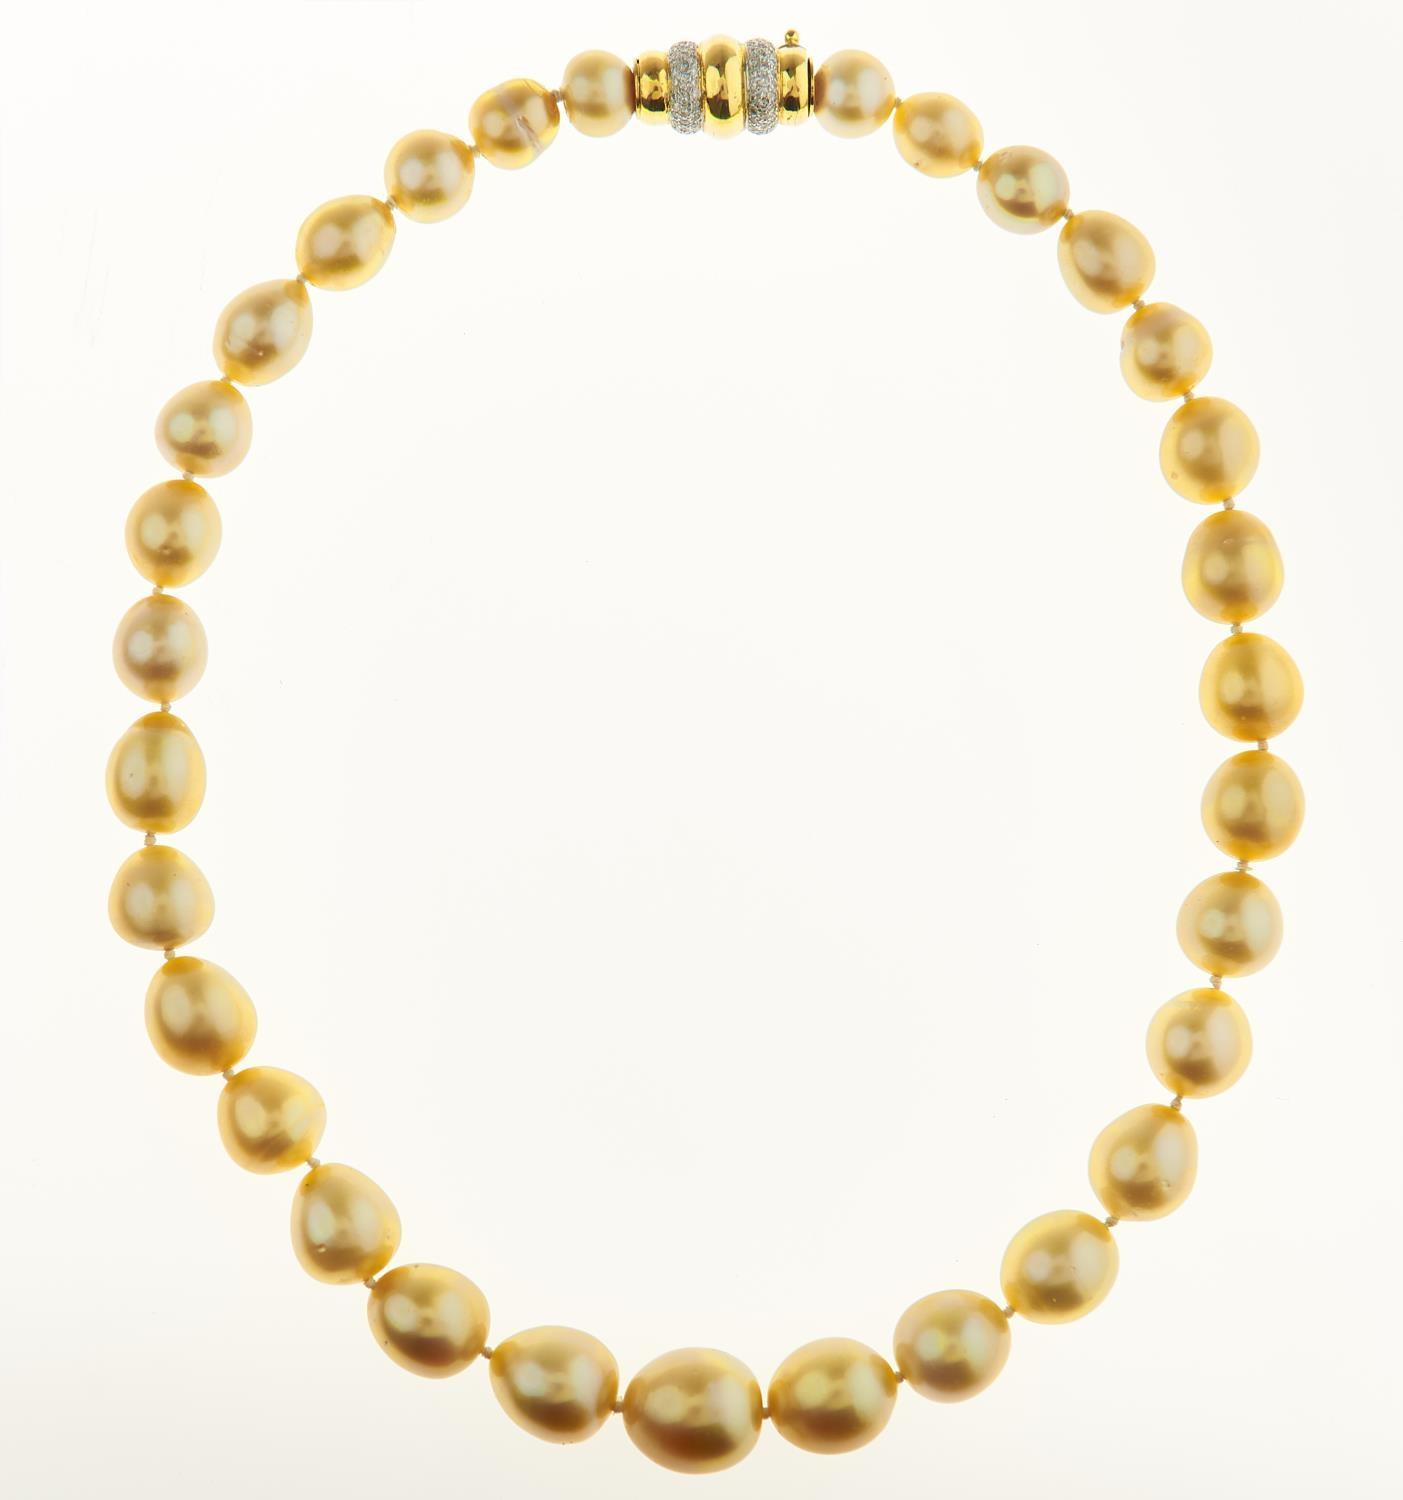 A GOLDEN SOUTH SEA CULTURED PEARL NECKLACE, THE SINGLE STRAND OF THIRTY ONE OVAL AND DROP SHAPED